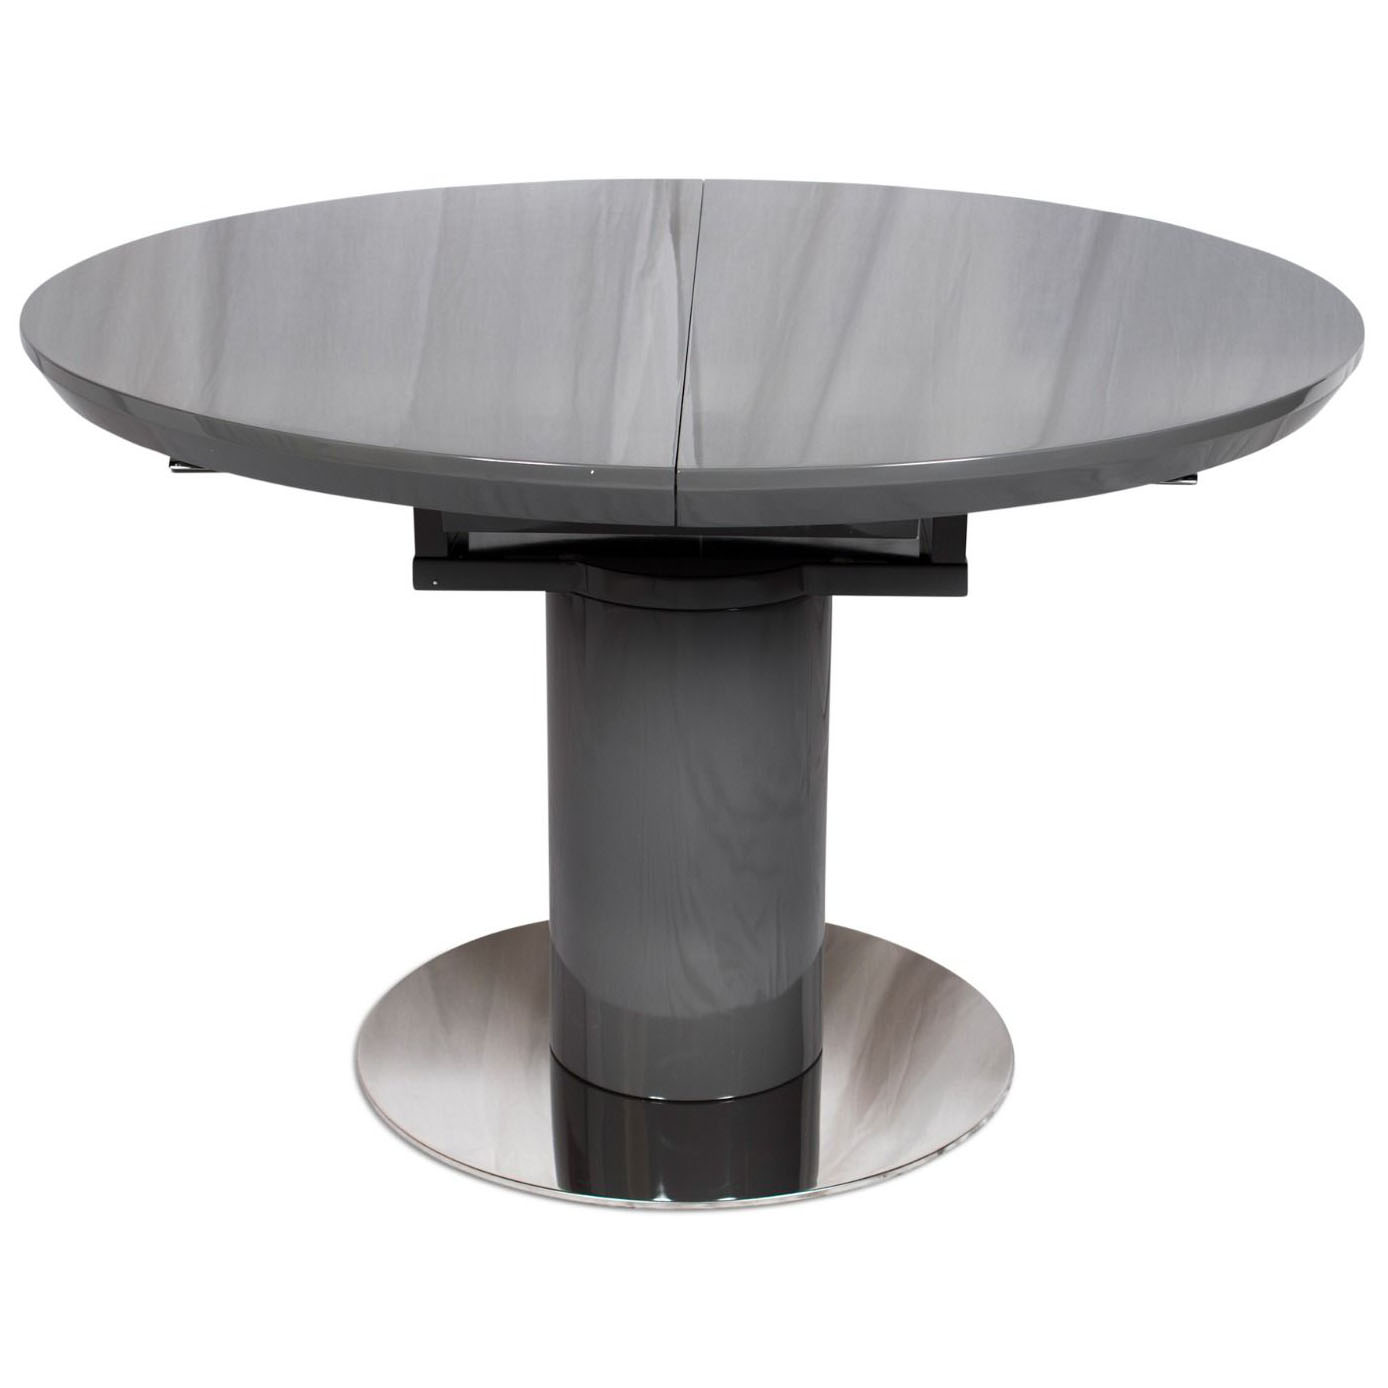 Varna Round Extending Dining Table 120 160xm Grey Collingwood Batchellor